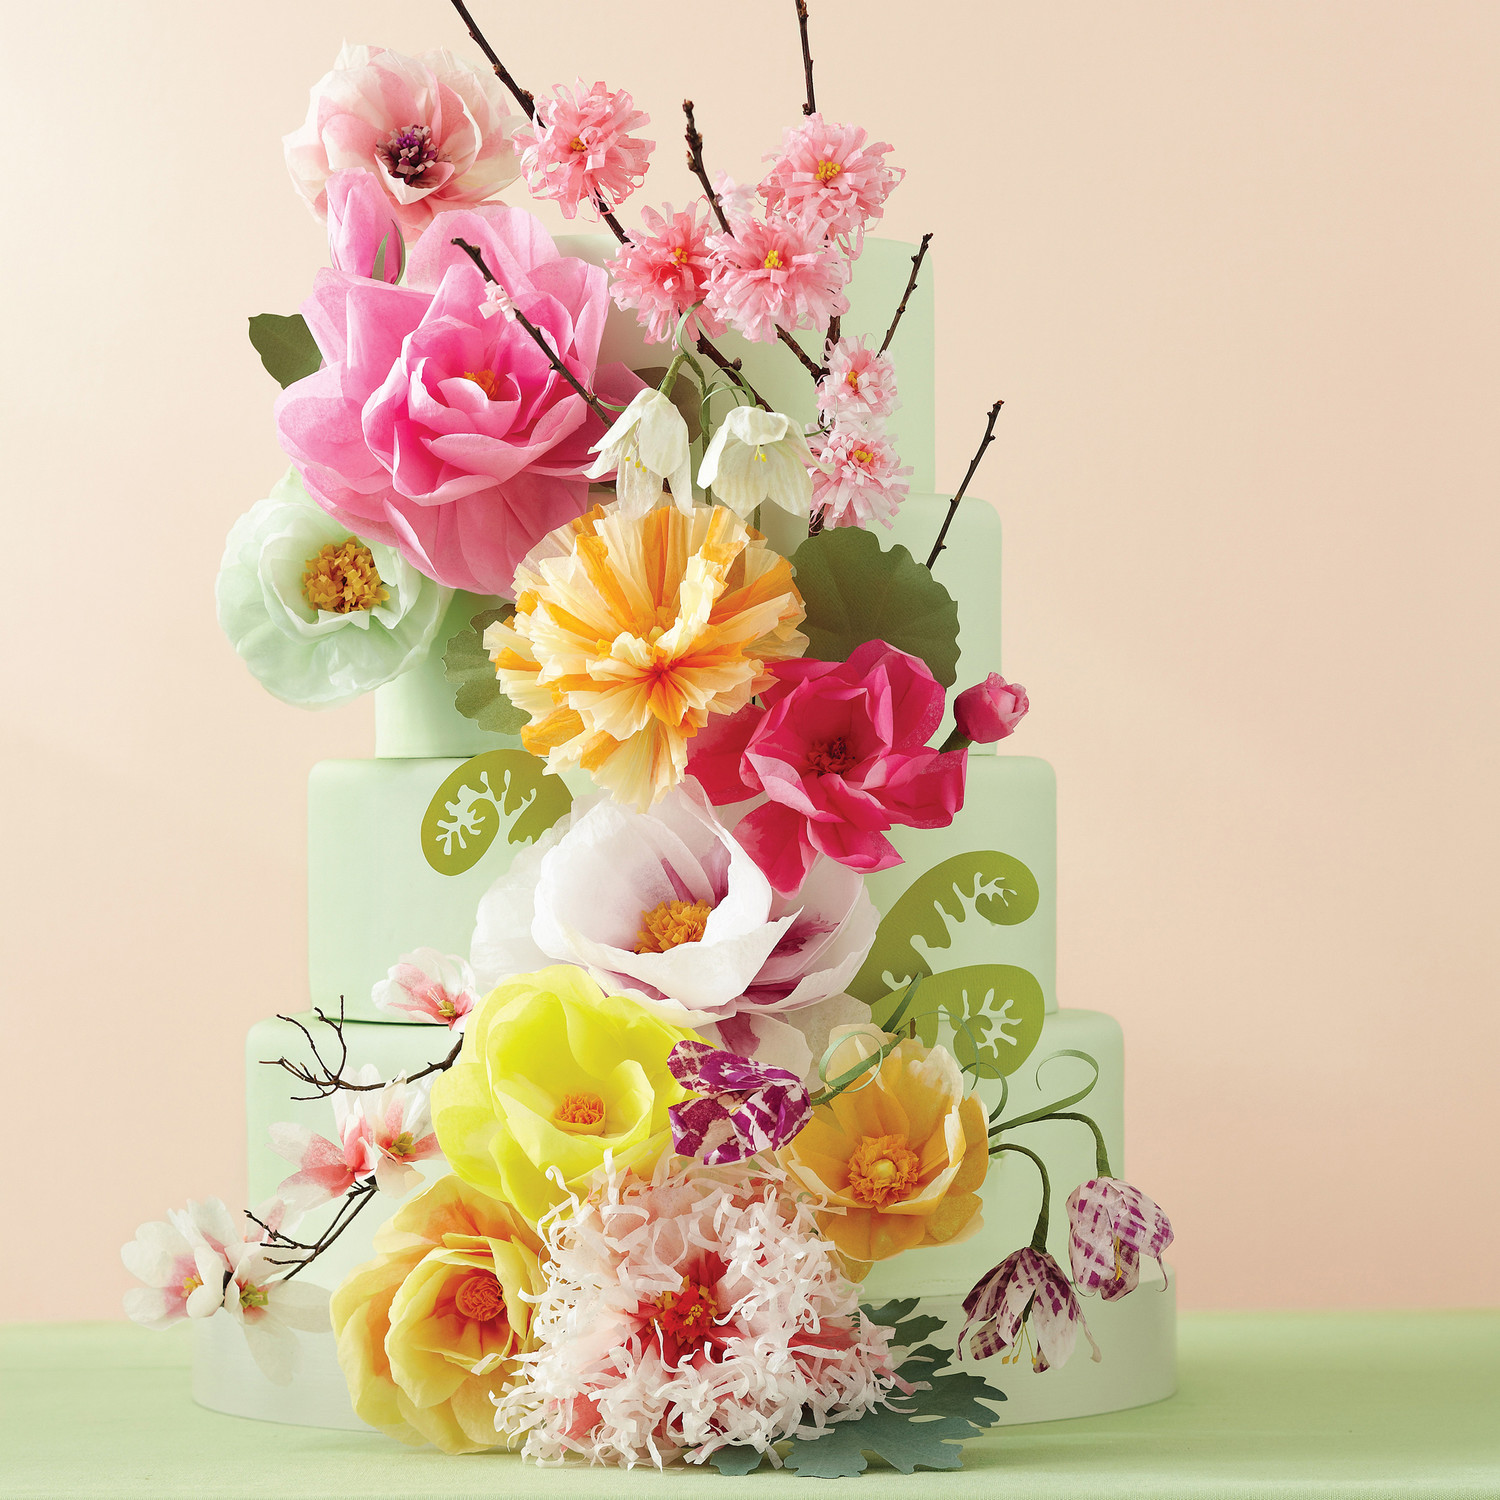 flower wedding cake topper ideas 11 diy wedding cake ideas that will transform your tiers 14357